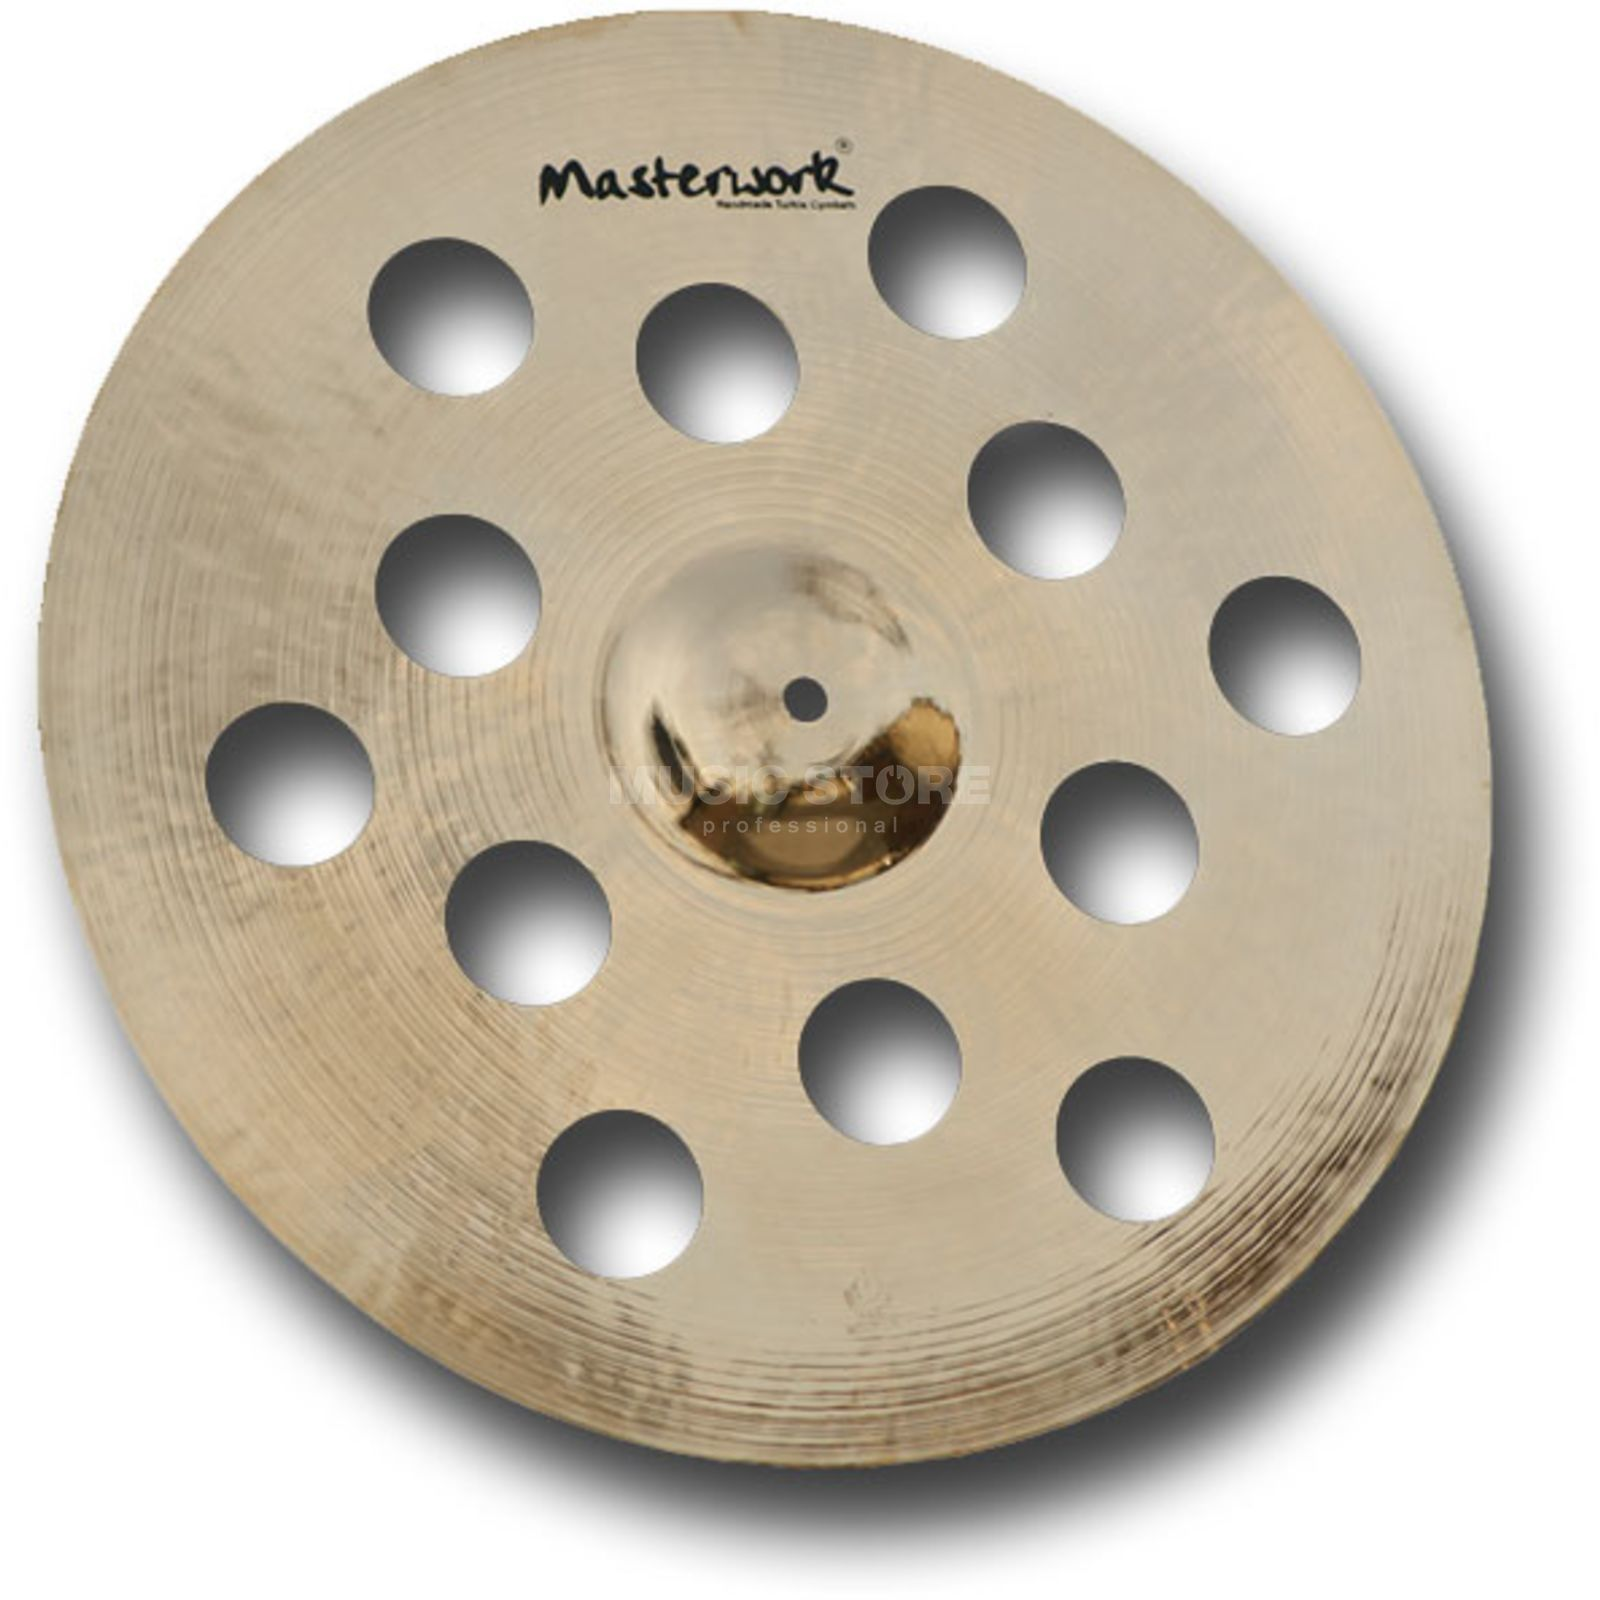 "Masterwork Resonant FX Crash 15"", Brilliant Finish Produktbillede"